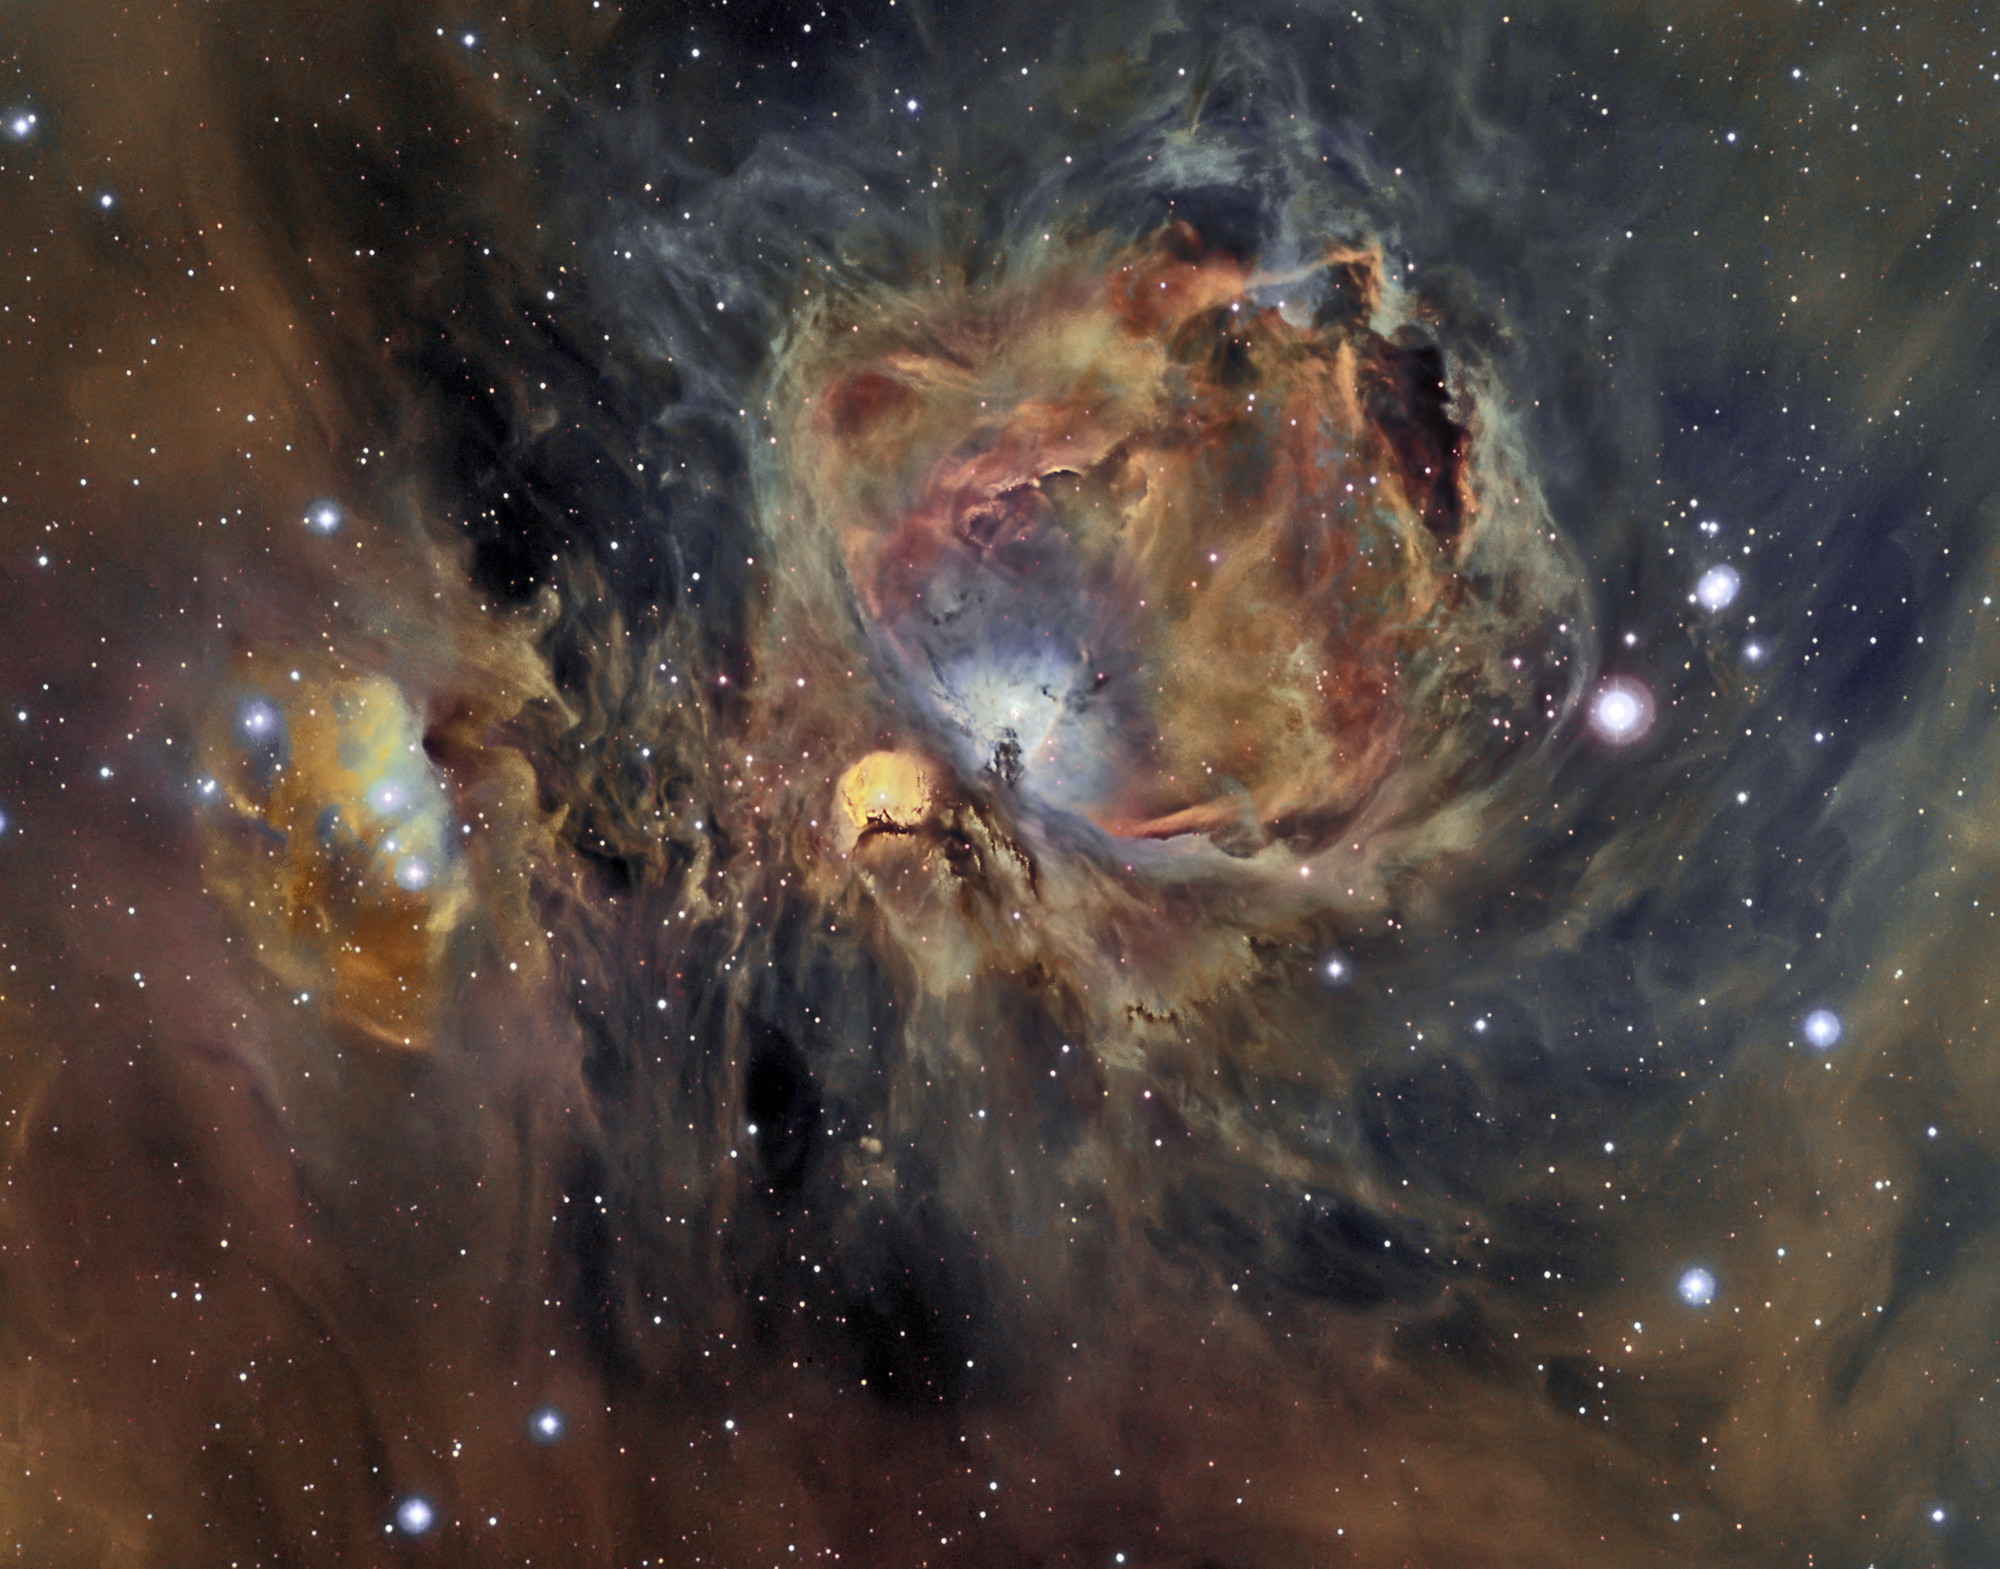 The Nebula's glowing gas surrounds hot young stars at the edge of an  immense interstellar molecular